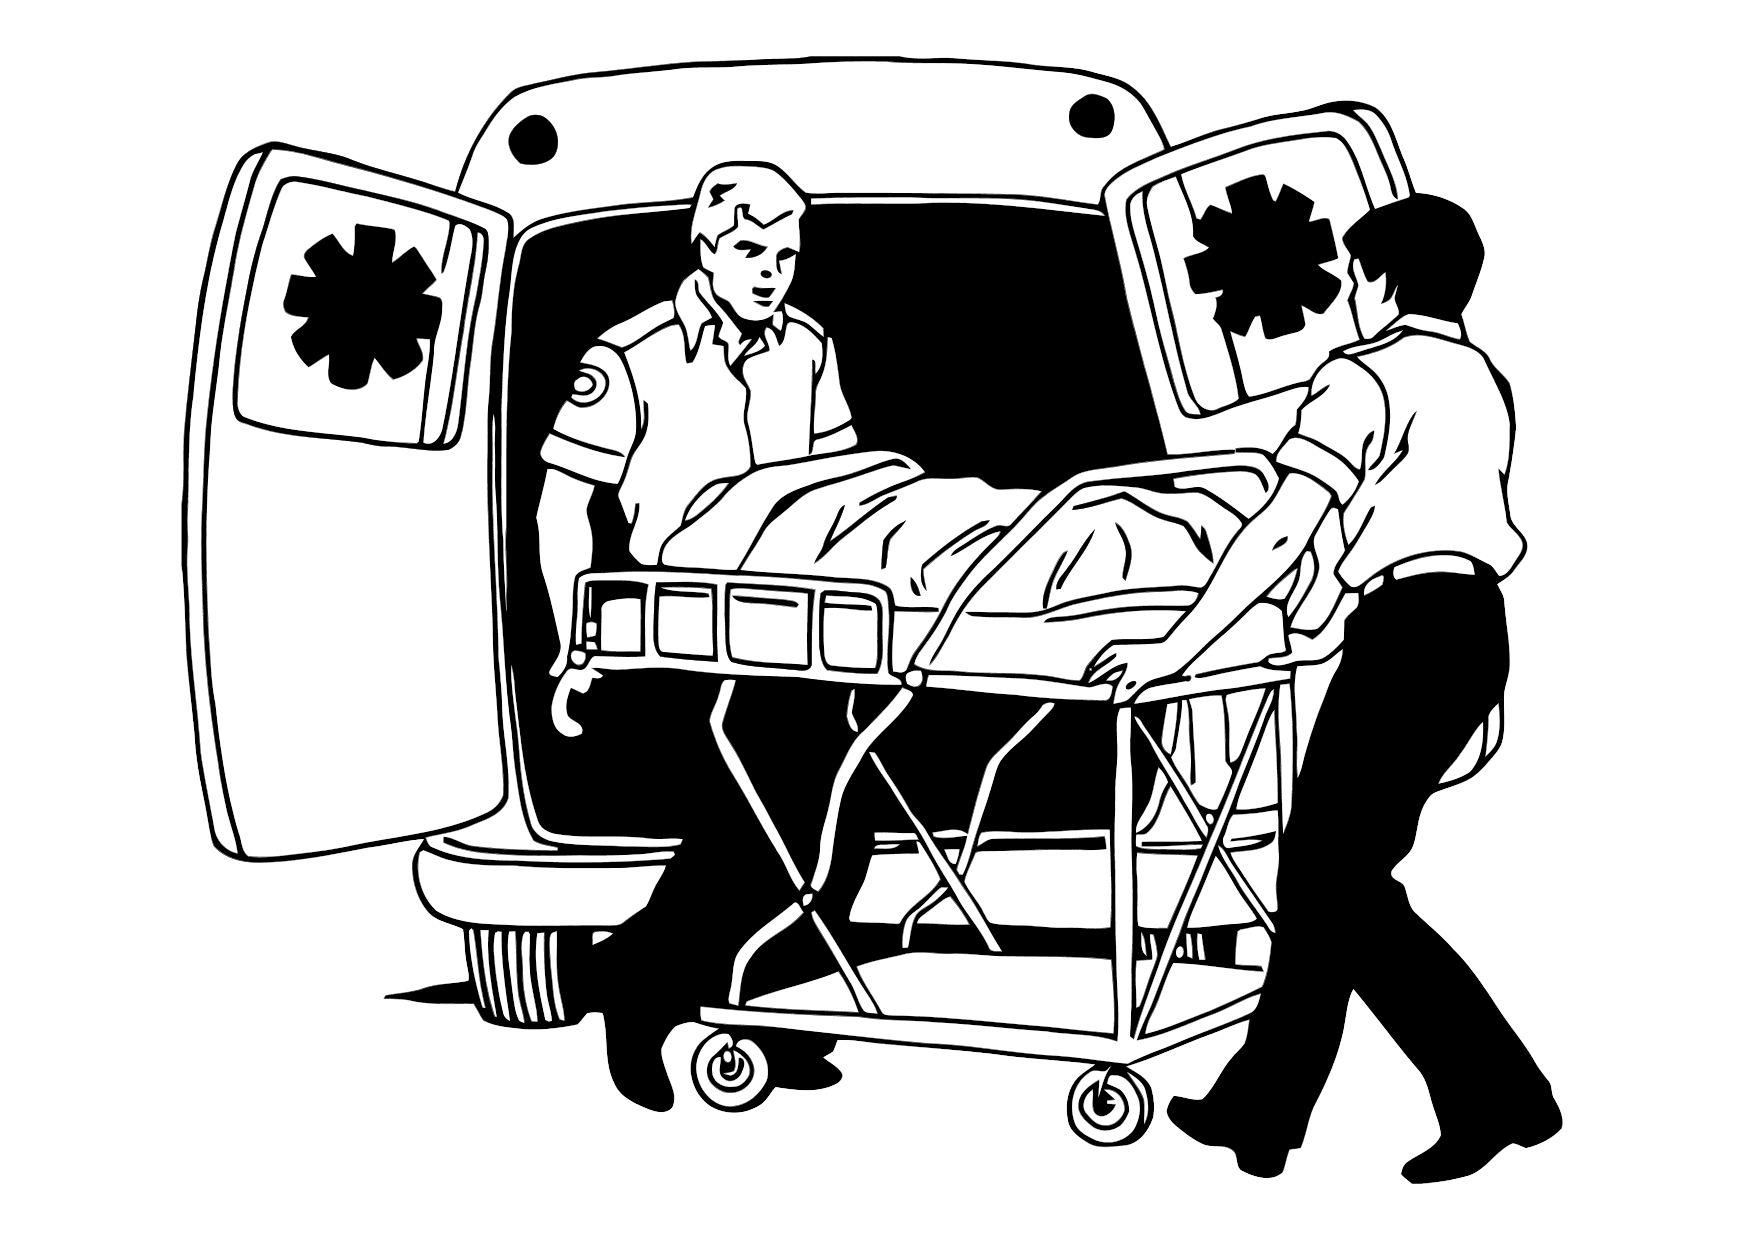 Clip Art Paramedic Coloring Pages coloring page ambulance img 11373 download large image